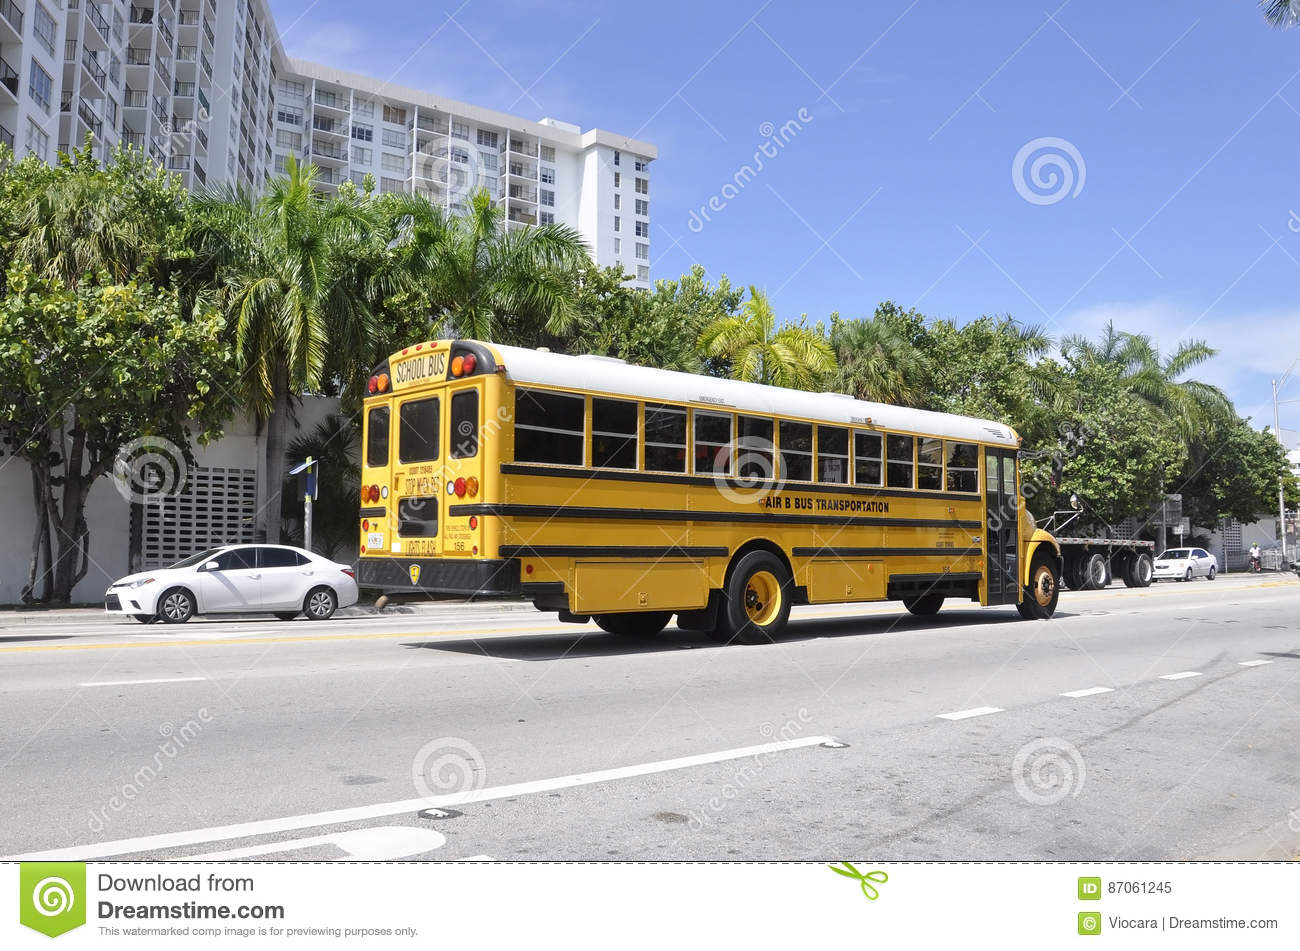 Miami Beach Fl August 09th School Bus Downtown Miami Beach In Florida Editorial Image Image Of Hotel Beautiful 87061245